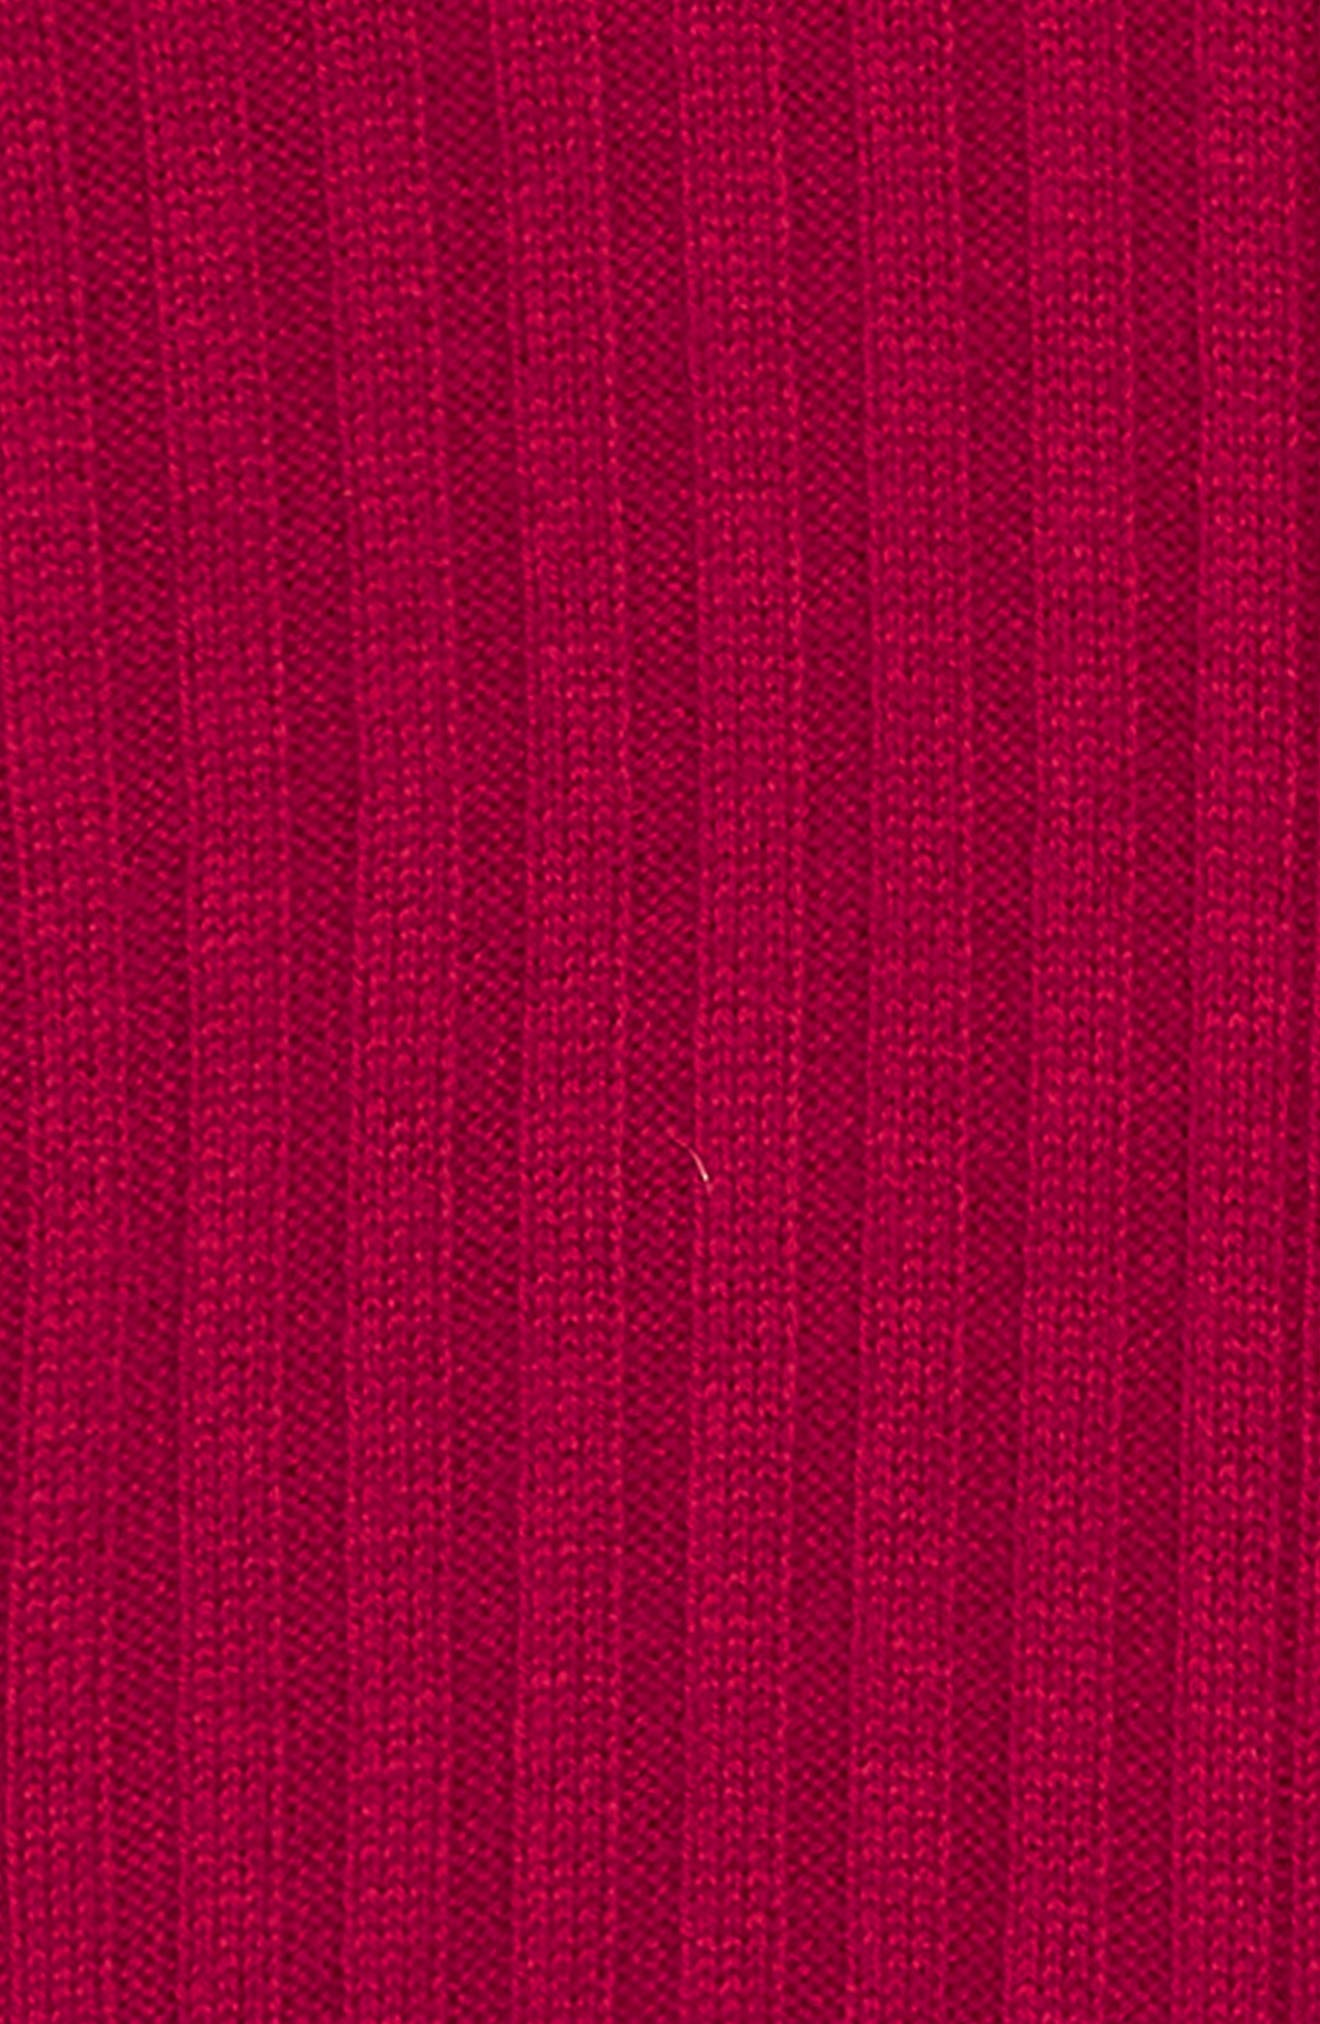 Kids Cathina Check Detail Wool & Cashmere Sweater Dress,                             Alternate thumbnail 3, color,                             BURGUNDY RED